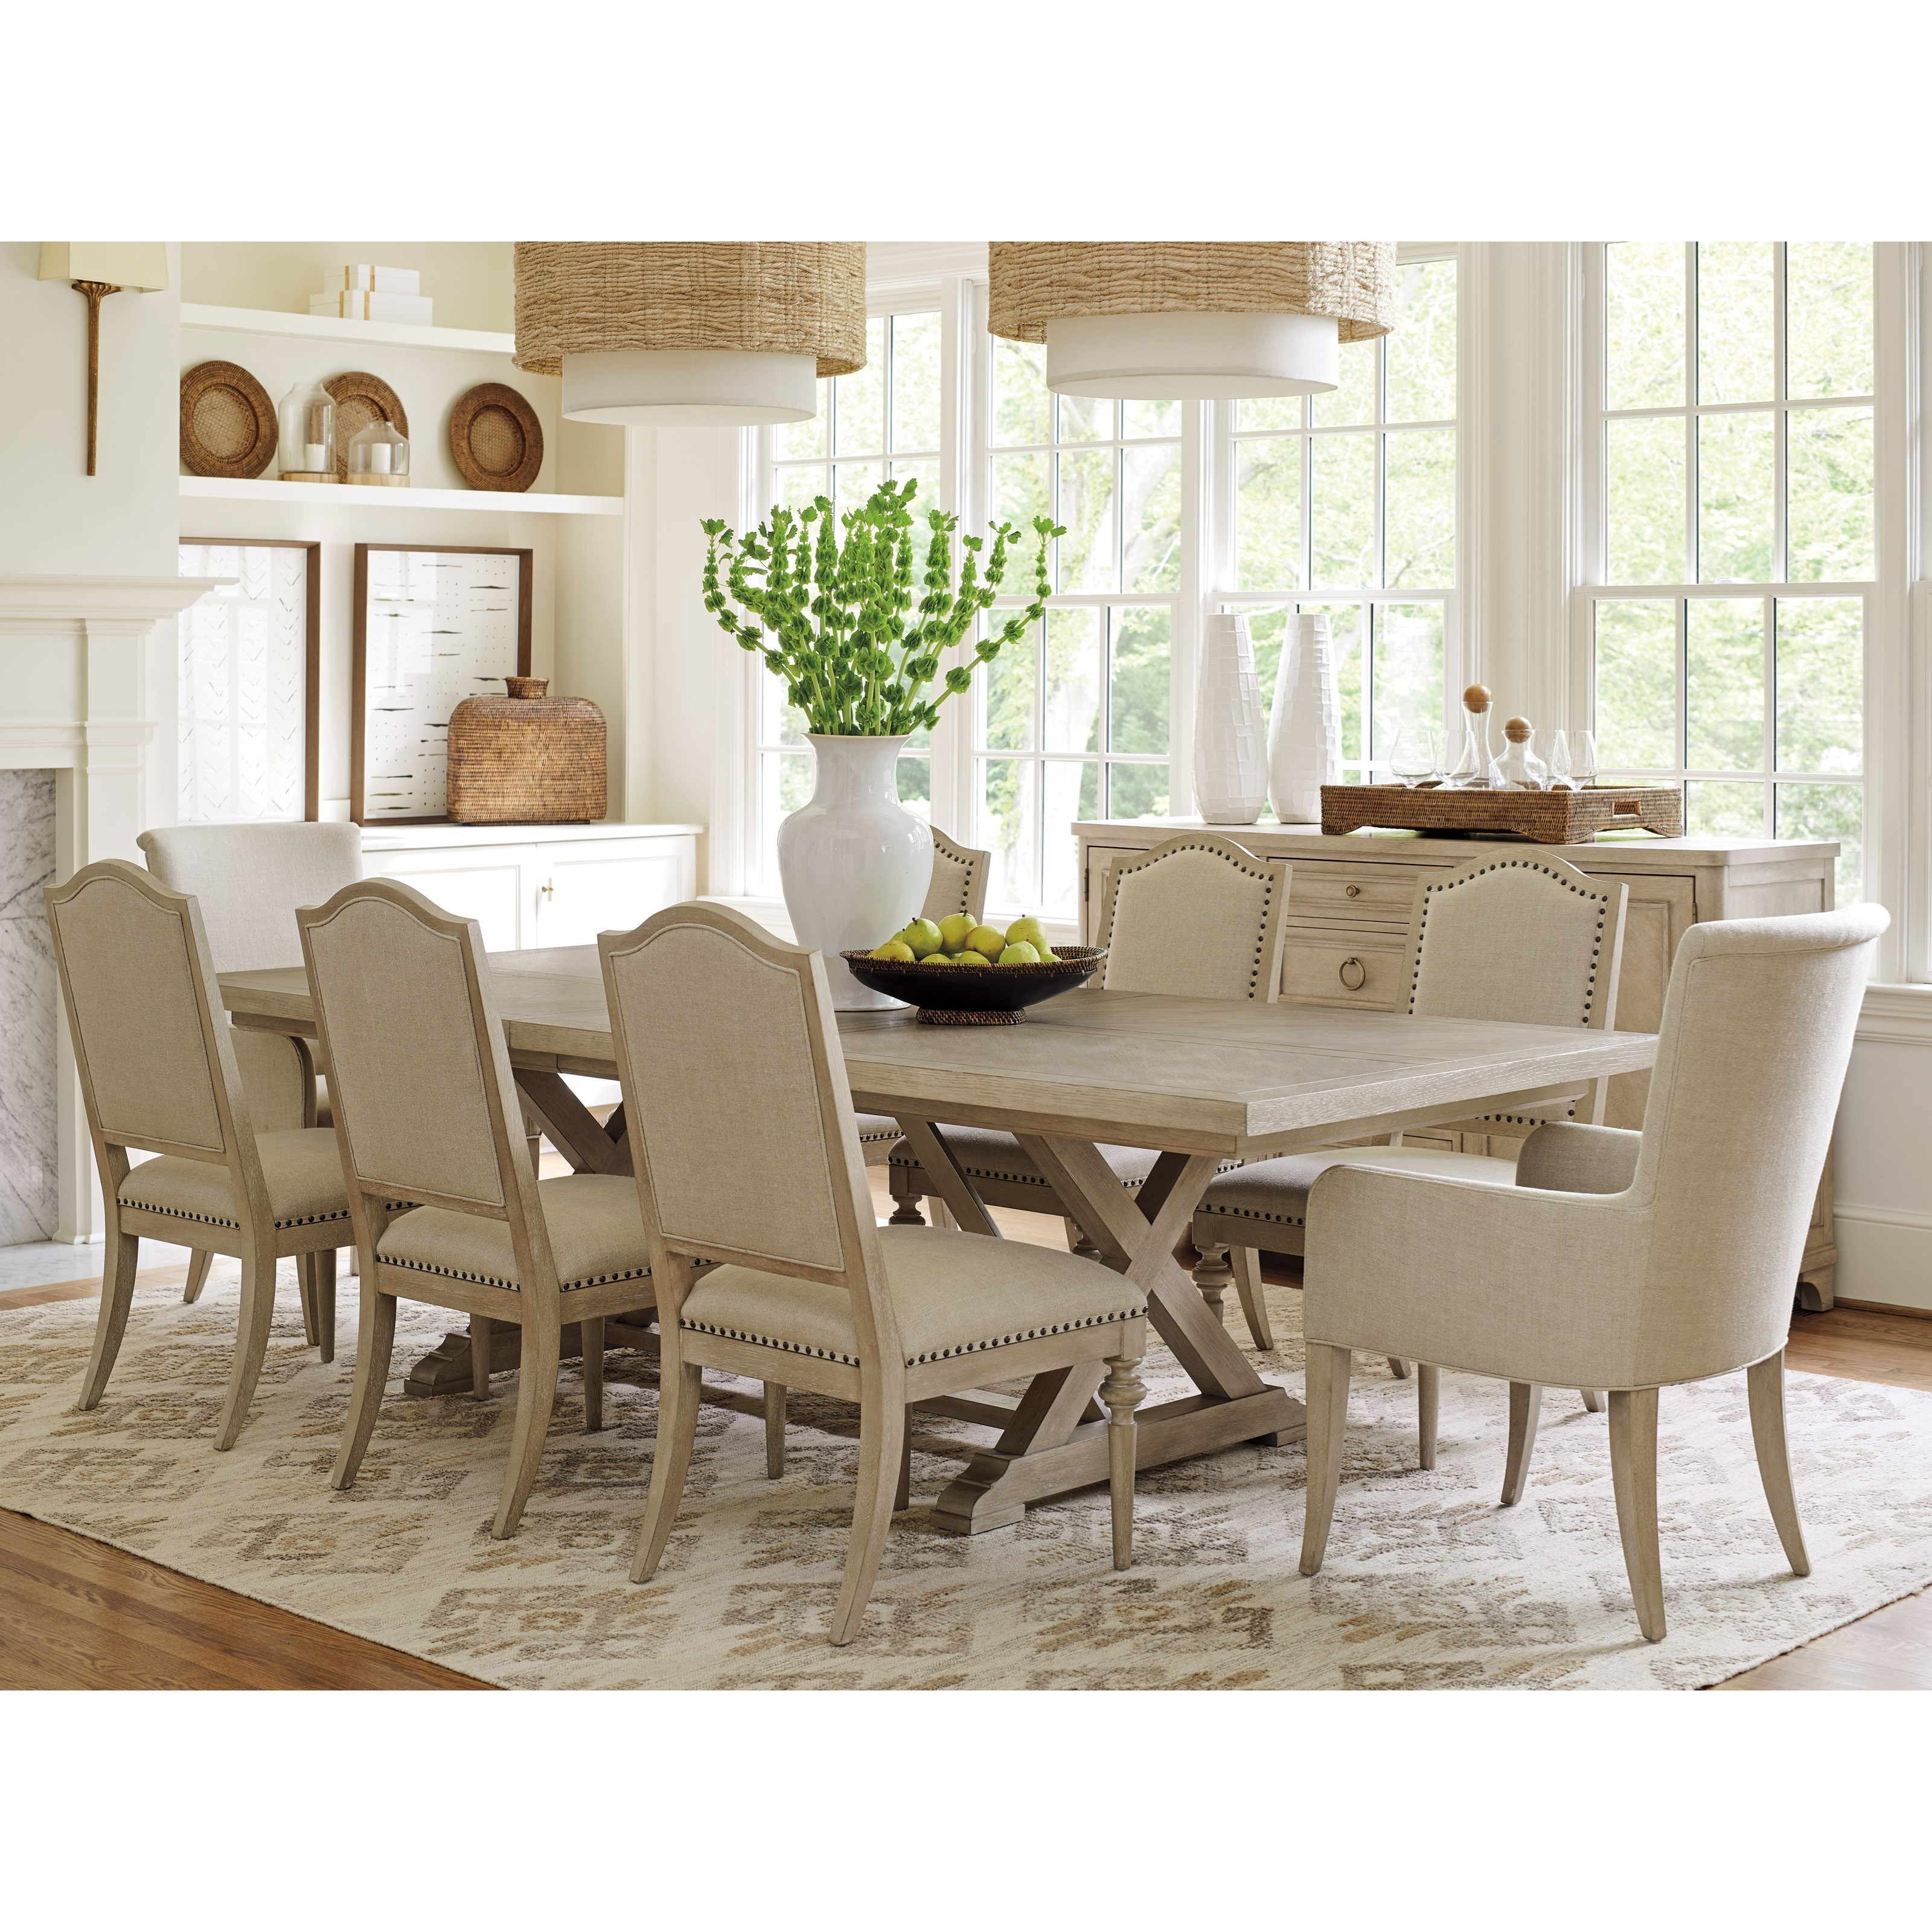 Malibu Formal Dining Group by Barclay Butera at Baer's Furniture